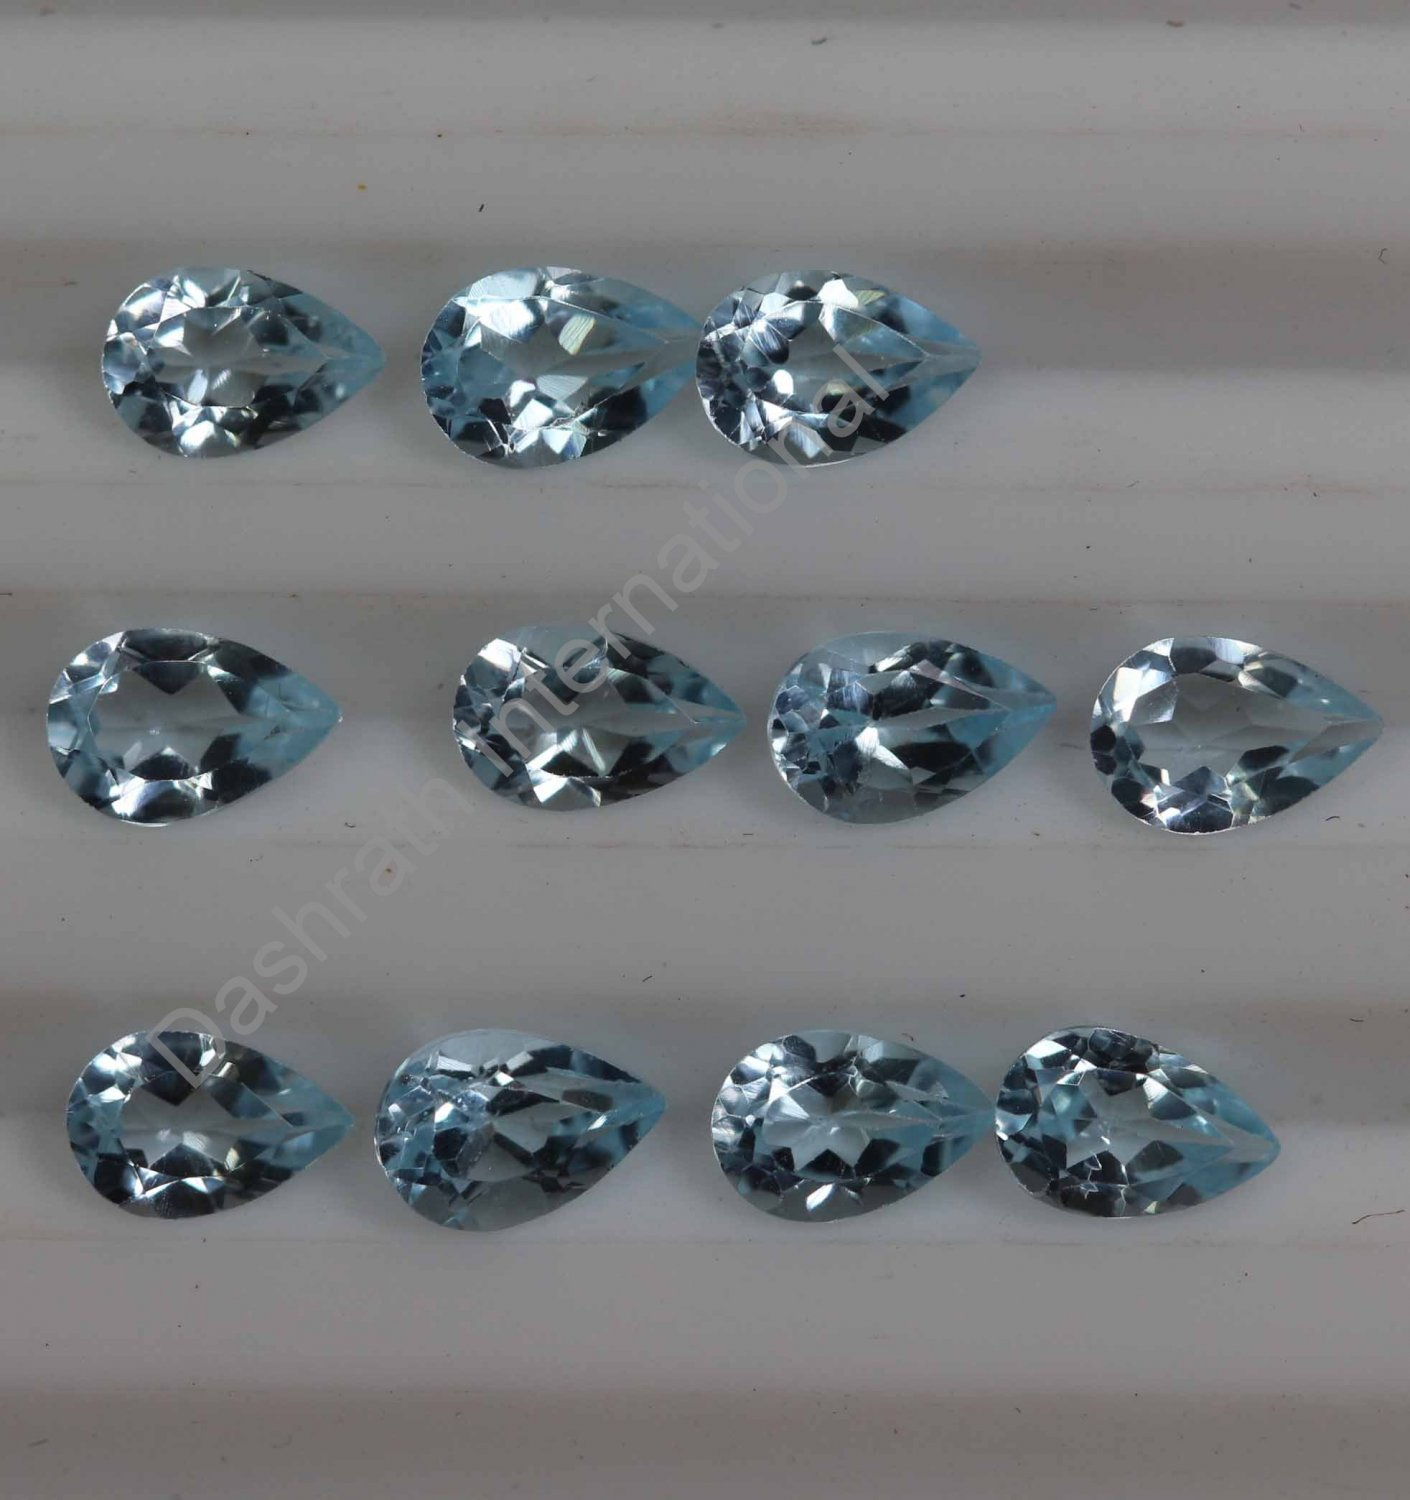 7x5mm  Natural Sky Blue Topaz Faceted Cut Pear 10 Pieces Lot  Top Quality Loose Gemstone